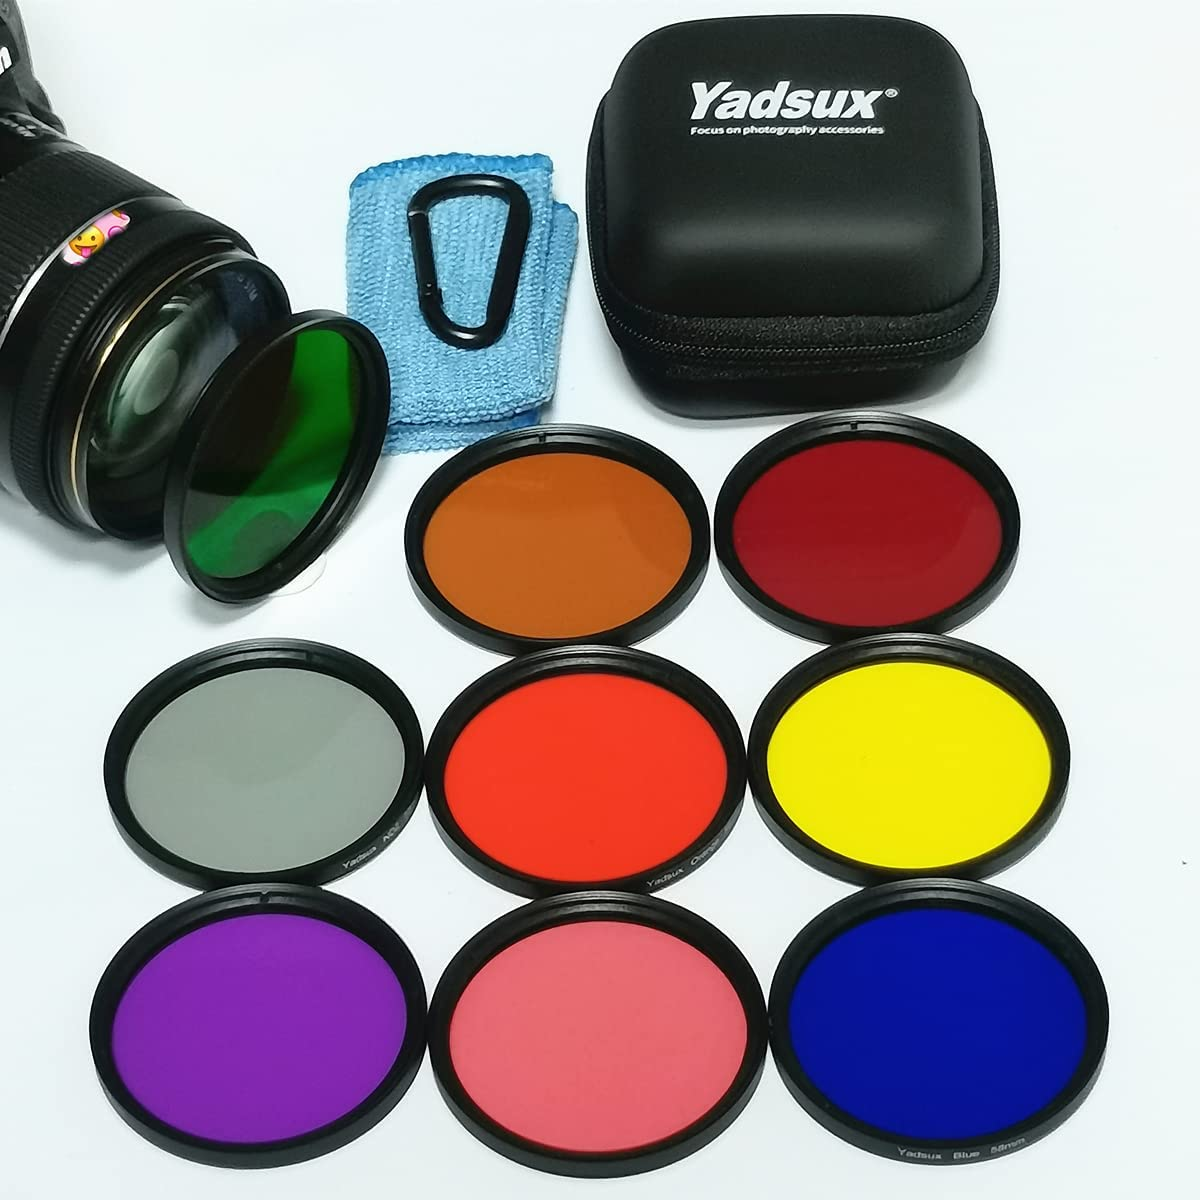 Yadsux 62mm Color Filter Kit, Including Red, Orange, Blue, Yello